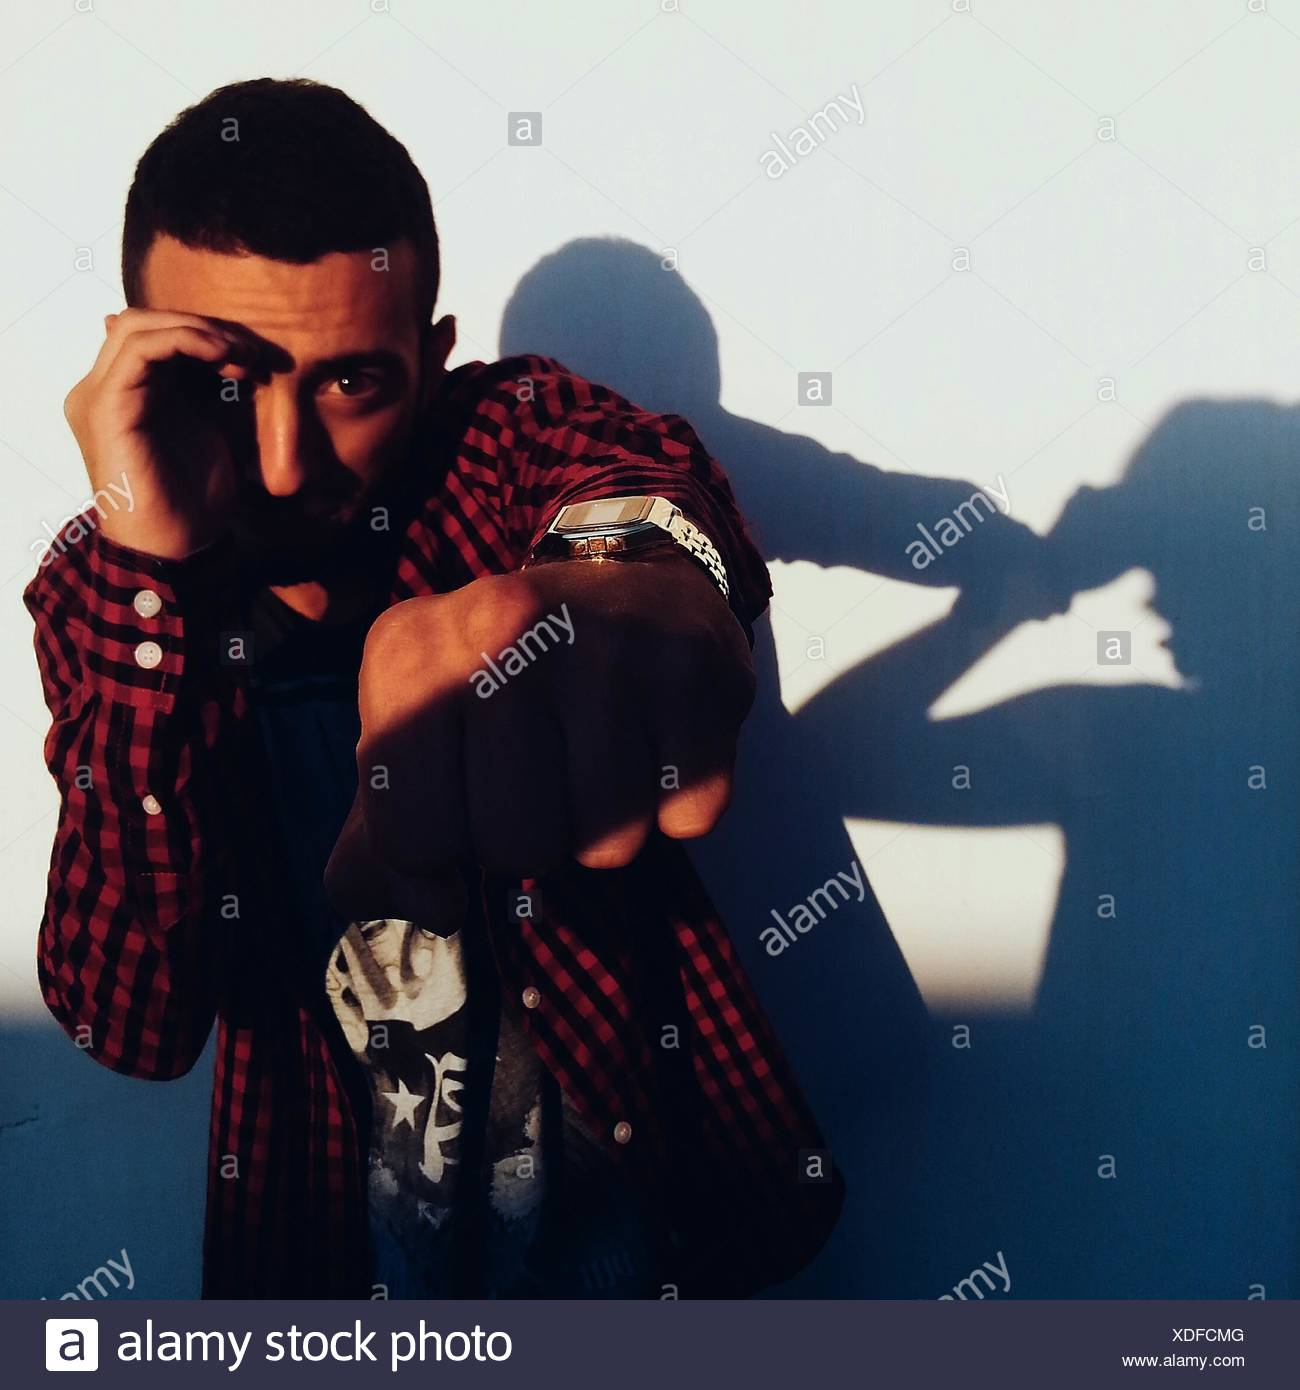 Portrait Of Young Man Punching Air Against Wall - Stock Image